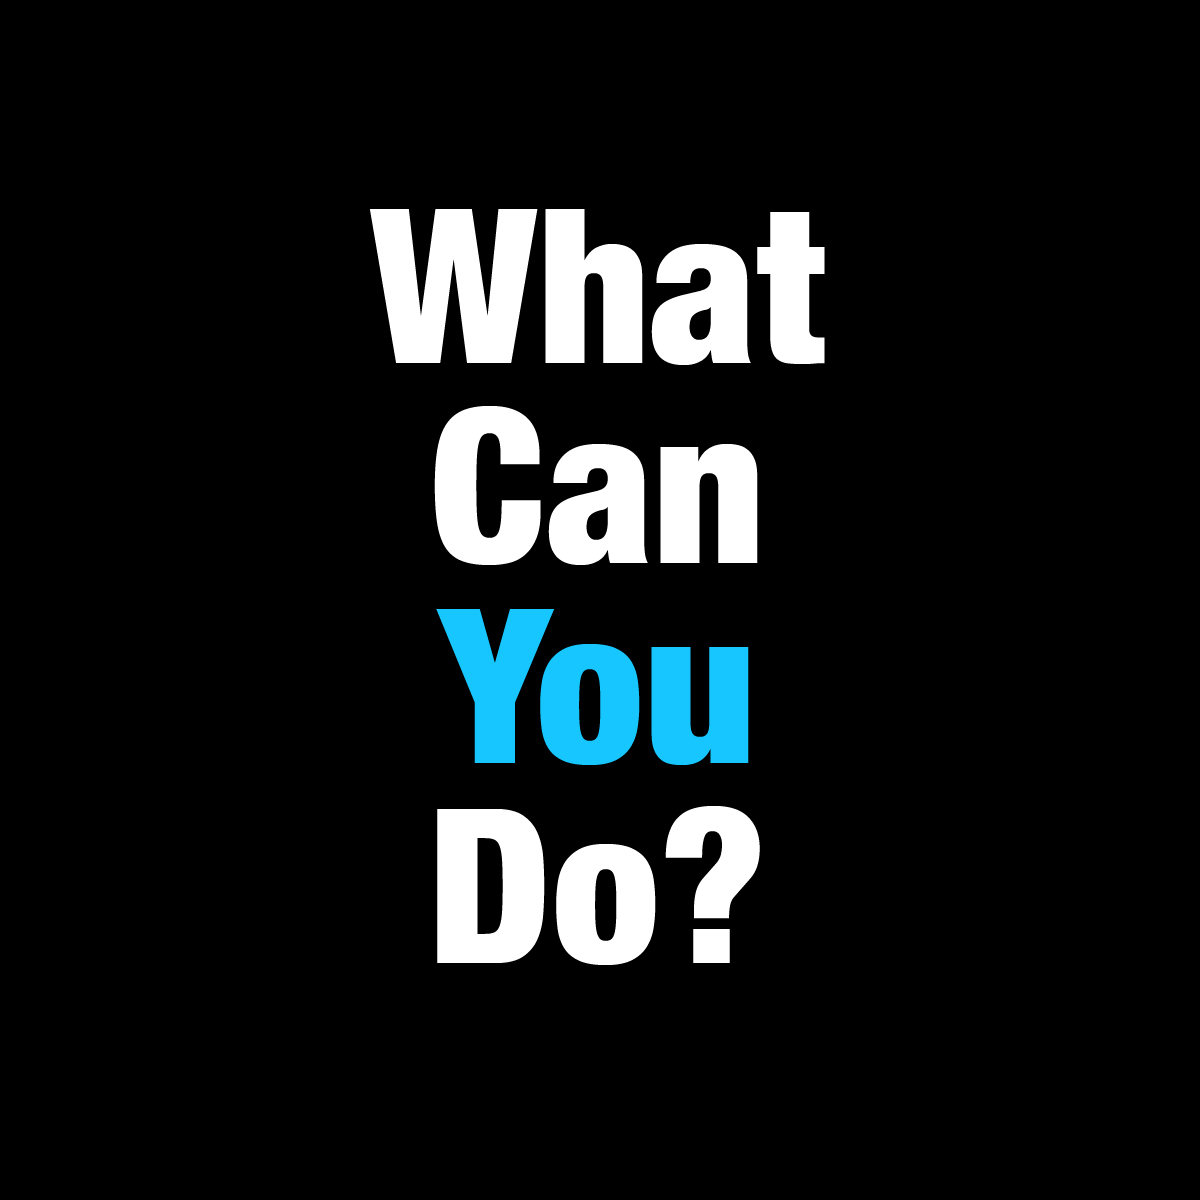 WhatCanYouDo-